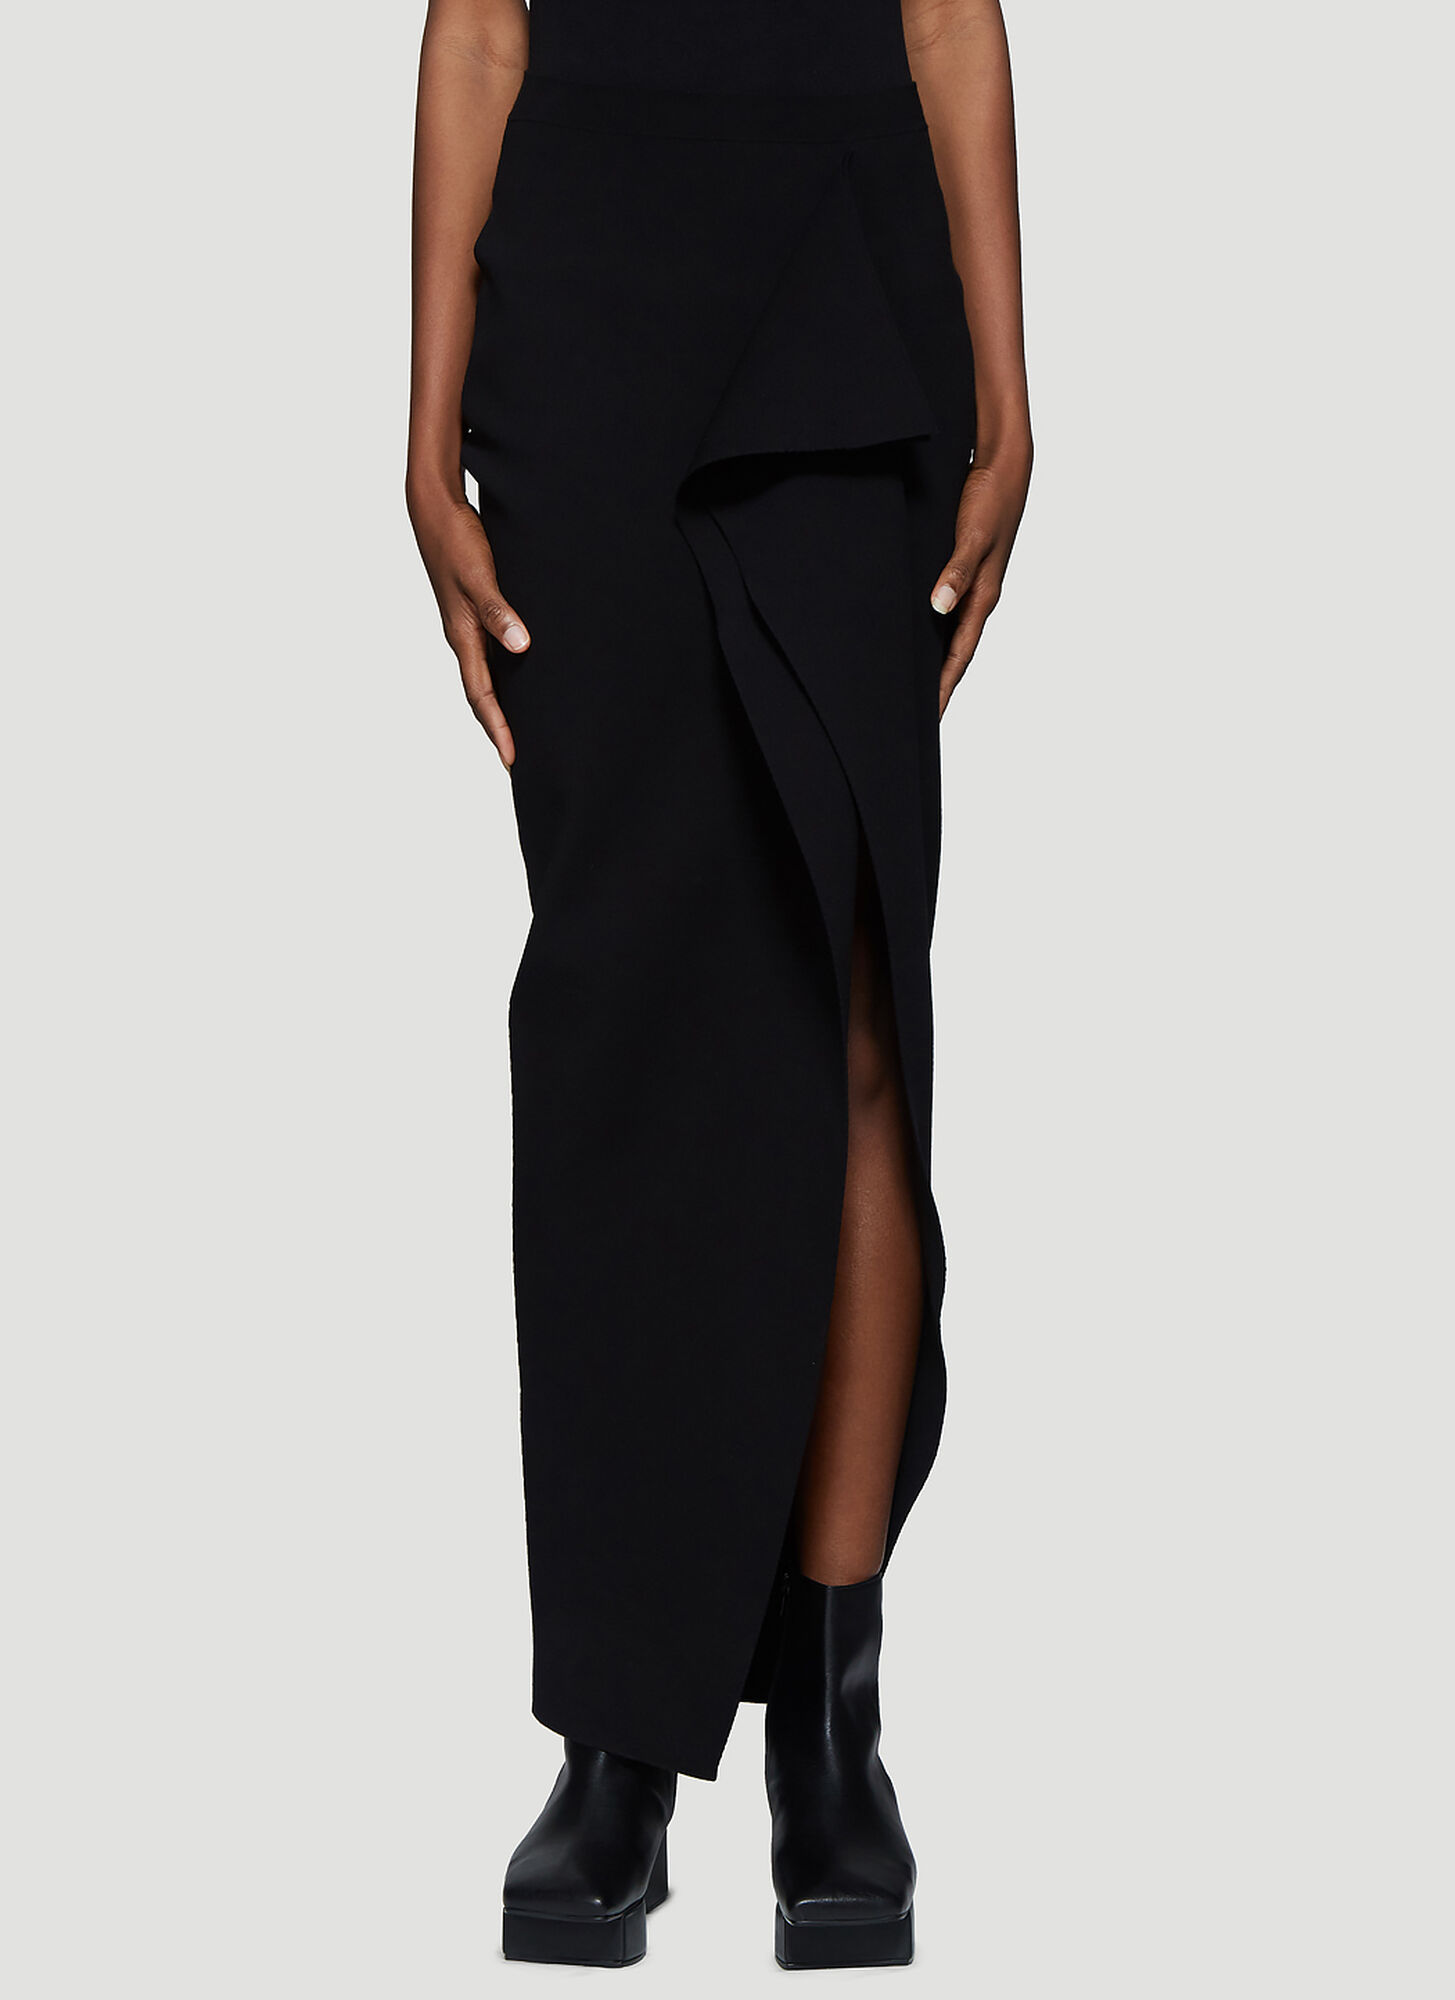 Rick Owens Short Grace Skirt in Black